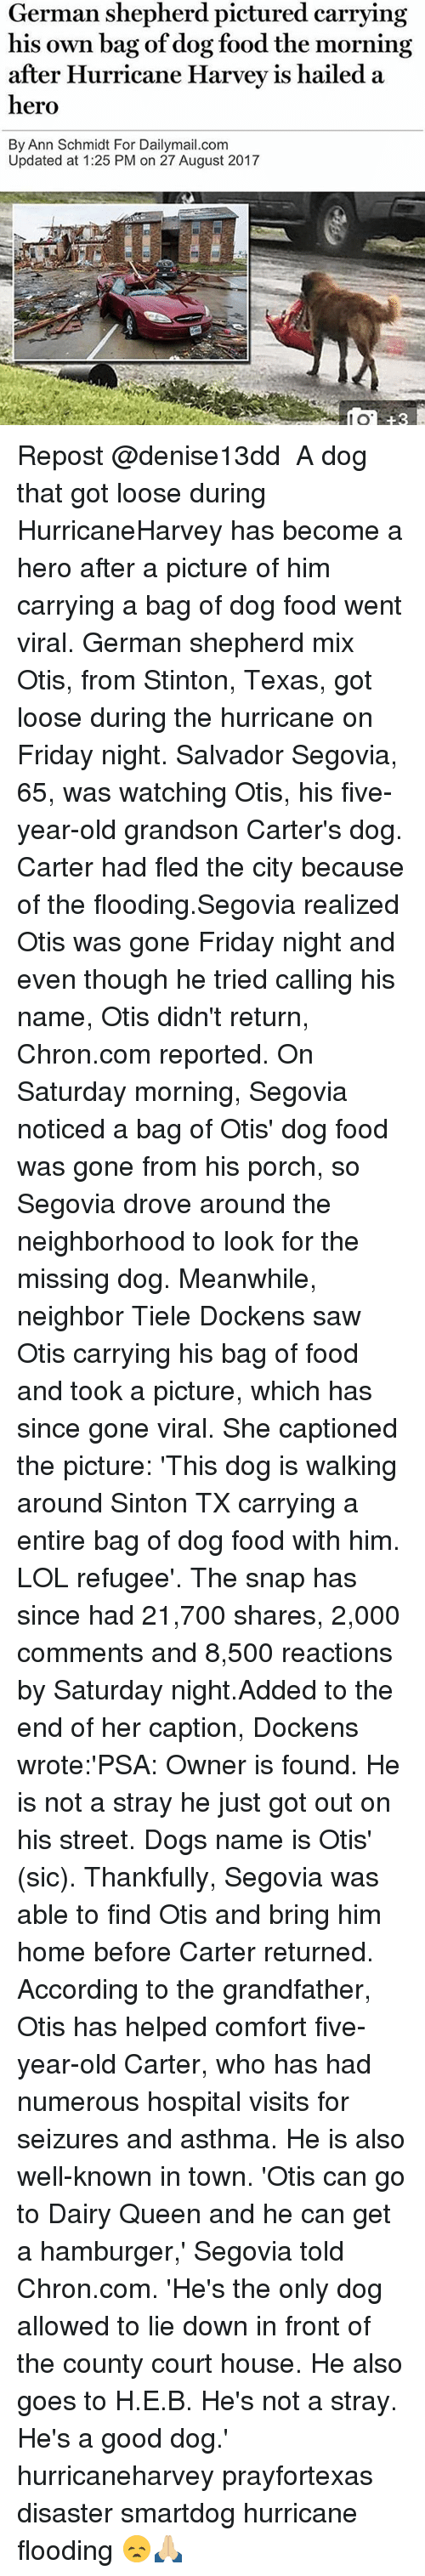 Sawing: German shepherd pictured carrying  his own bag of dog food the morning  after Hurricane Harvev is hailed a  hero  By Ann Schmidt For Dailymail.com  Updated at 1:25 PM on 27 August 2017  80  8 Repost @denise13dd ・・・ A dog that got loose during HurricaneHarvey has become a hero after a picture of him carrying a bag of dog food went viral. German shepherd mix Otis, from Stinton, Texas, got loose during the hurricane on Friday night. Salvador Segovia, 65, was watching Otis, his five-year-old grandson Carter's dog. Carter had fled the city because of the flooding.Segovia realized Otis was gone Friday night and even though he tried calling his name, Otis didn't return, Chron.com reported. On Saturday morning, Segovia noticed a bag of Otis' dog food was gone from his porch, so Segovia drove around the neighborhood to look for the missing dog. Meanwhile, neighbor Tiele Dockens saw Otis carrying his bag of food and took a picture, which has since gone viral. She captioned the picture: 'This dog is walking around Sinton TX carrying a entire bag of dog food with him. LOL refugee'. The snap has since had 21,700 shares, 2,000 comments and 8,500 reactions by Saturday night.Added to the end of her caption, Dockens wrote:'PSA: Owner is found. He is not a stray he just got out on his street. Dogs name is Otis' (sic). Thankfully, Segovia was able to find Otis and bring him home before Carter returned. According to the grandfather, Otis has helped comfort five-year-old Carter, who has had numerous hospital visits for seizures and asthma. He is also well-known in town. 'Otis can go to Dairy Queen and he can get a hamburger,' Segovia told Chron.com. 'He's the only dog allowed to lie down in front of the county court house. He also goes to H.E.B. He's not a stray. He's a good dog.' hurricaneharvey prayfortexas disaster smartdog hurricane flooding 😞🙏🏼